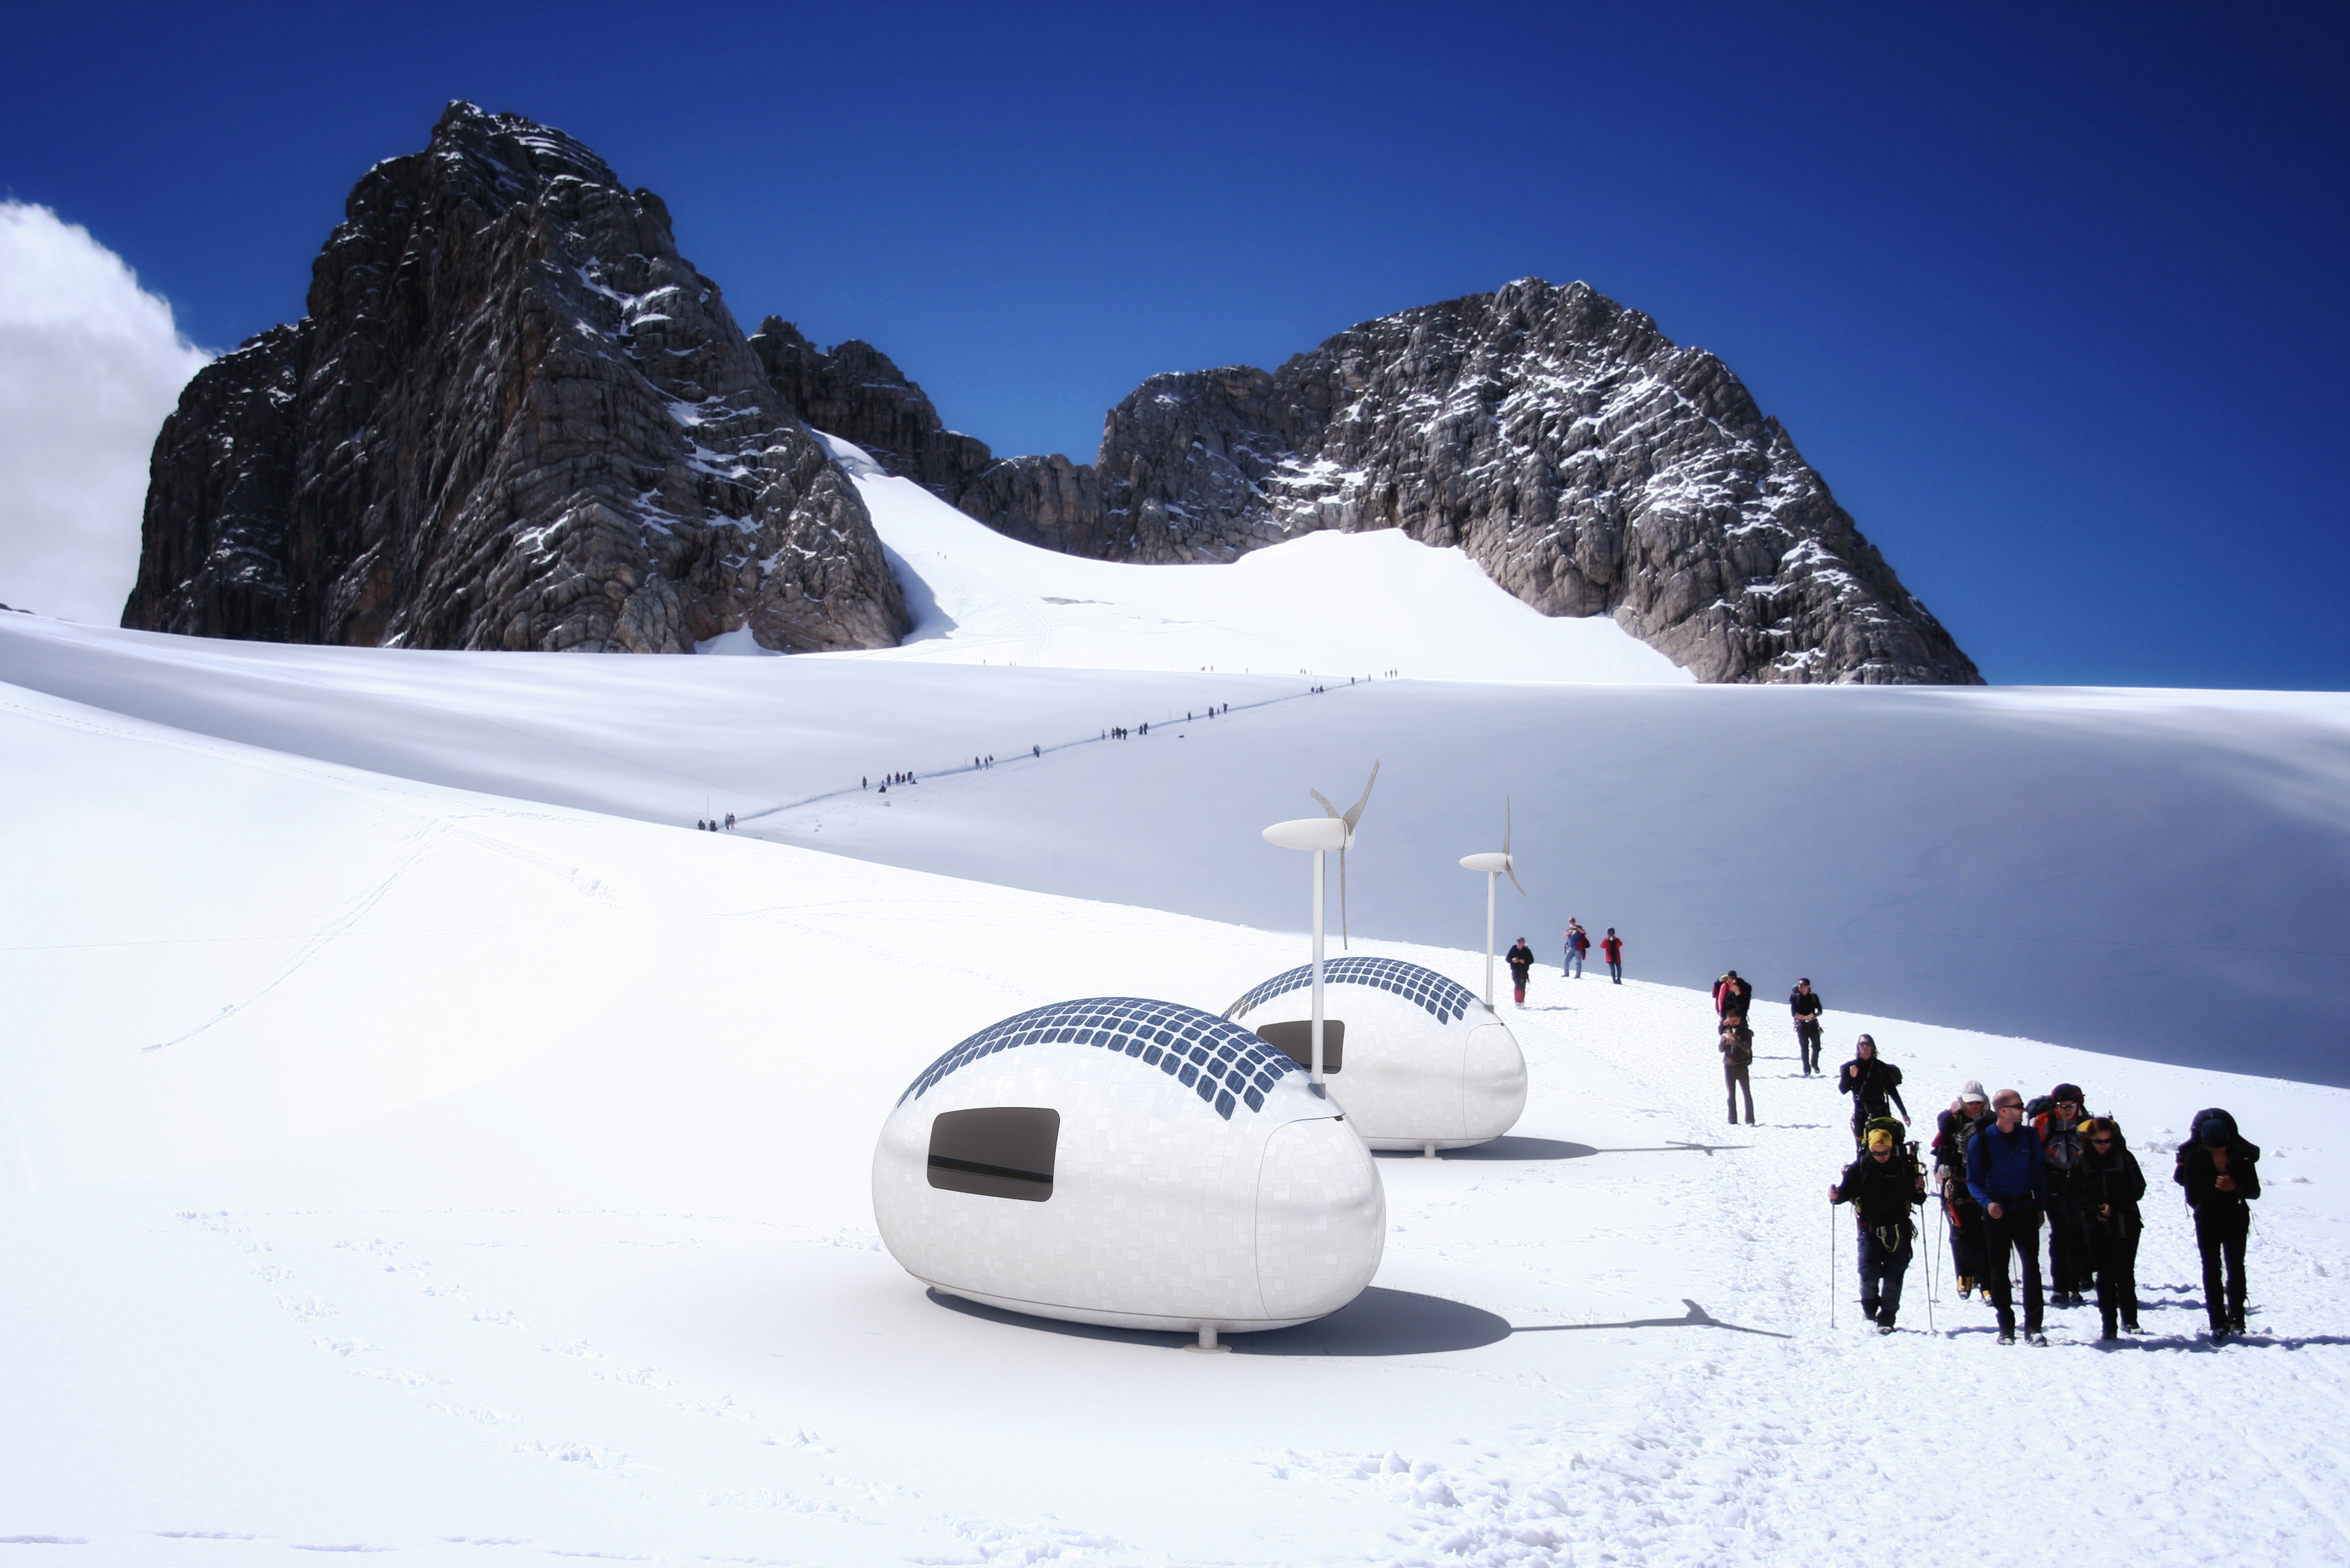 Skiers are walking by two Ecocapsules on a mountain covered by snow.